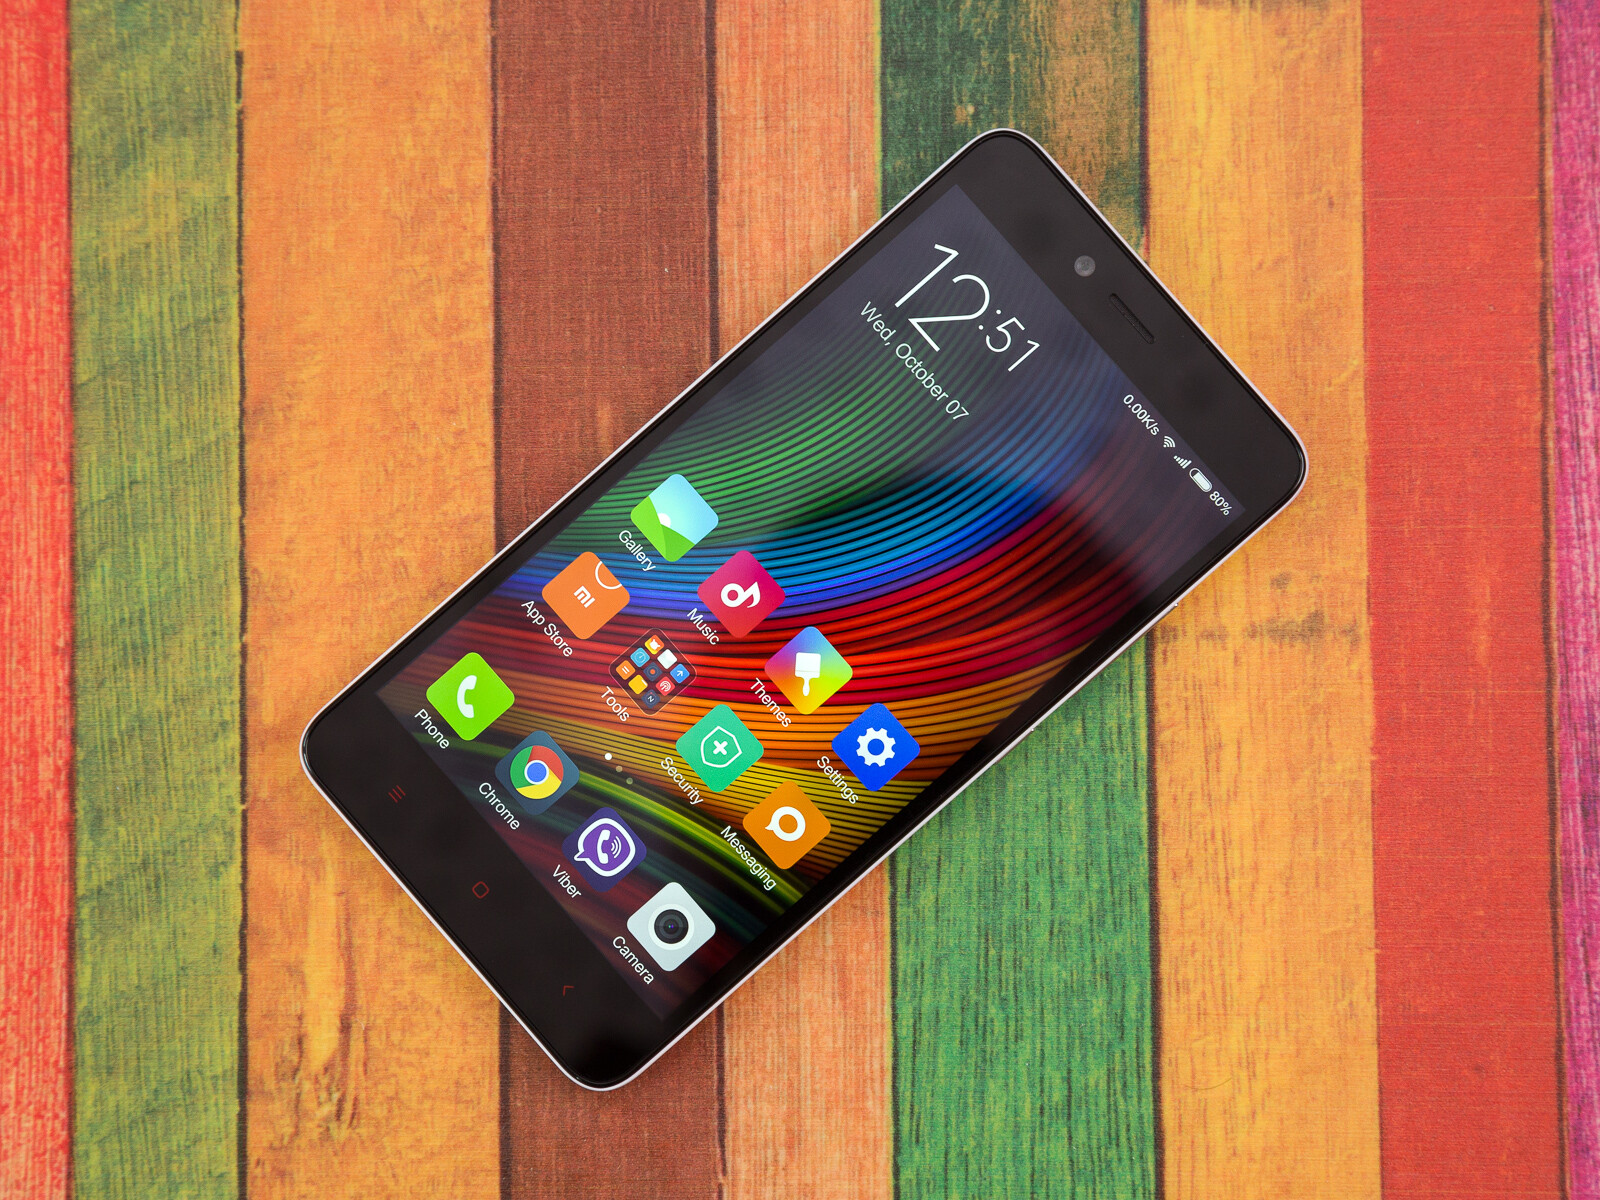 Xiaomi Redmi Note 2 Seemingly Survives Drop And Water Tests